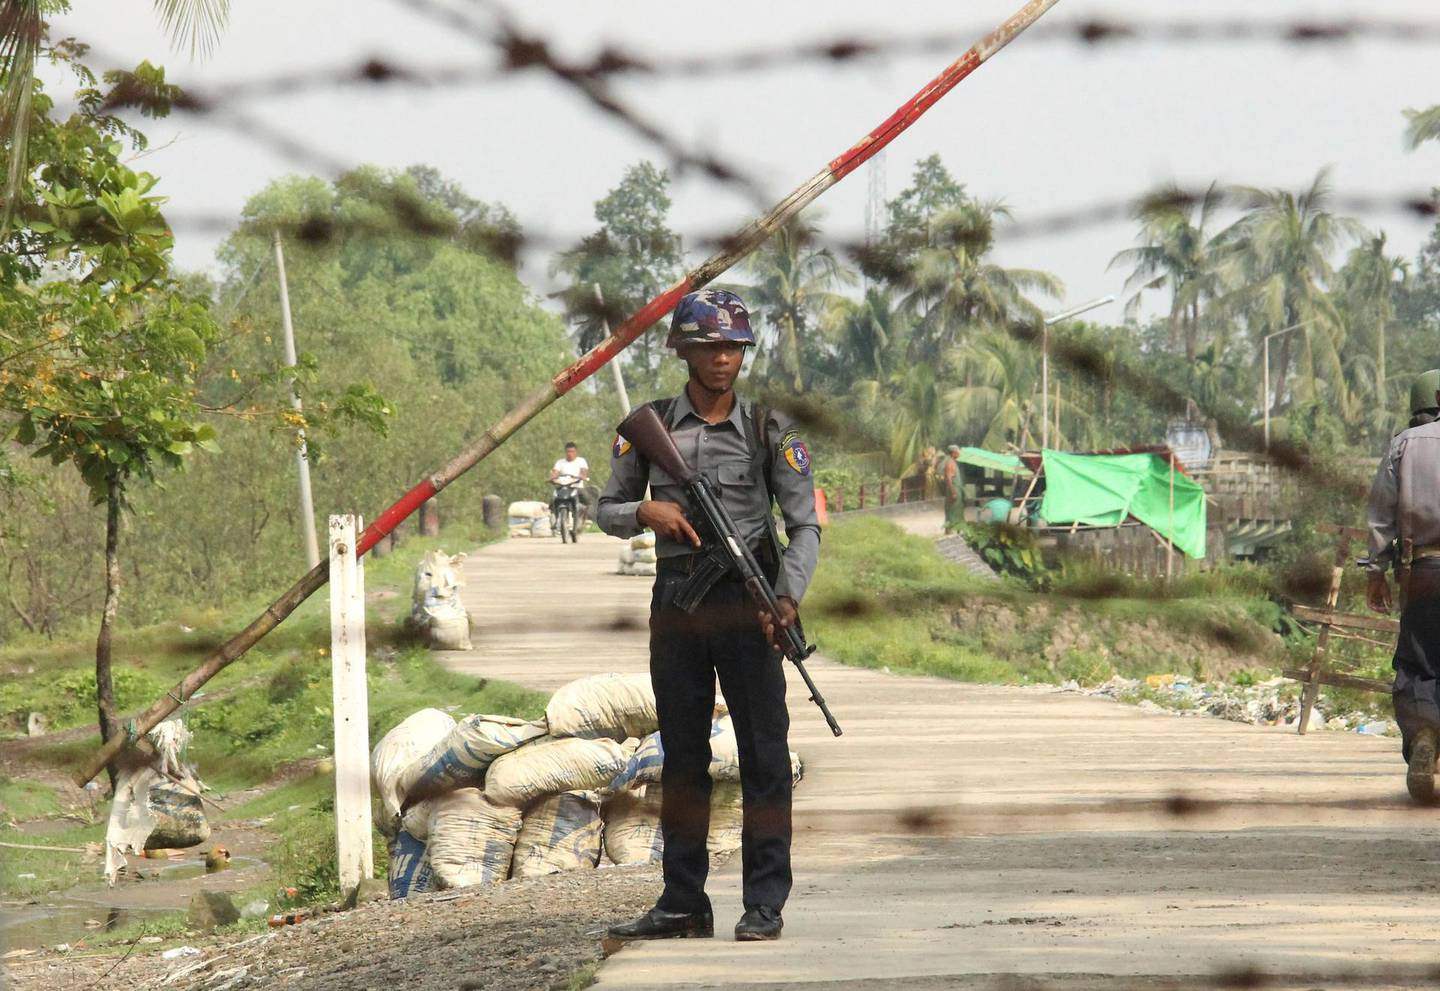 FILE - In this Sept. 6, 2017, file photo, a Myanmar police officer stands guard at a checkpoint in Shwe Zar village in the northern Rakhine state of Myanmar. Amnesty International, in a report issued Wednesday, May 29, 2019, says it has found new evidence of war crimes and human rights violations in Rakhine State, where the armed forces two years ago carried out a brutal counterinsurgency campaign that drove more than 700,000 members of the Muslim Rohingya minority to flee across the border to Bangladesh. (AP Photo/File)